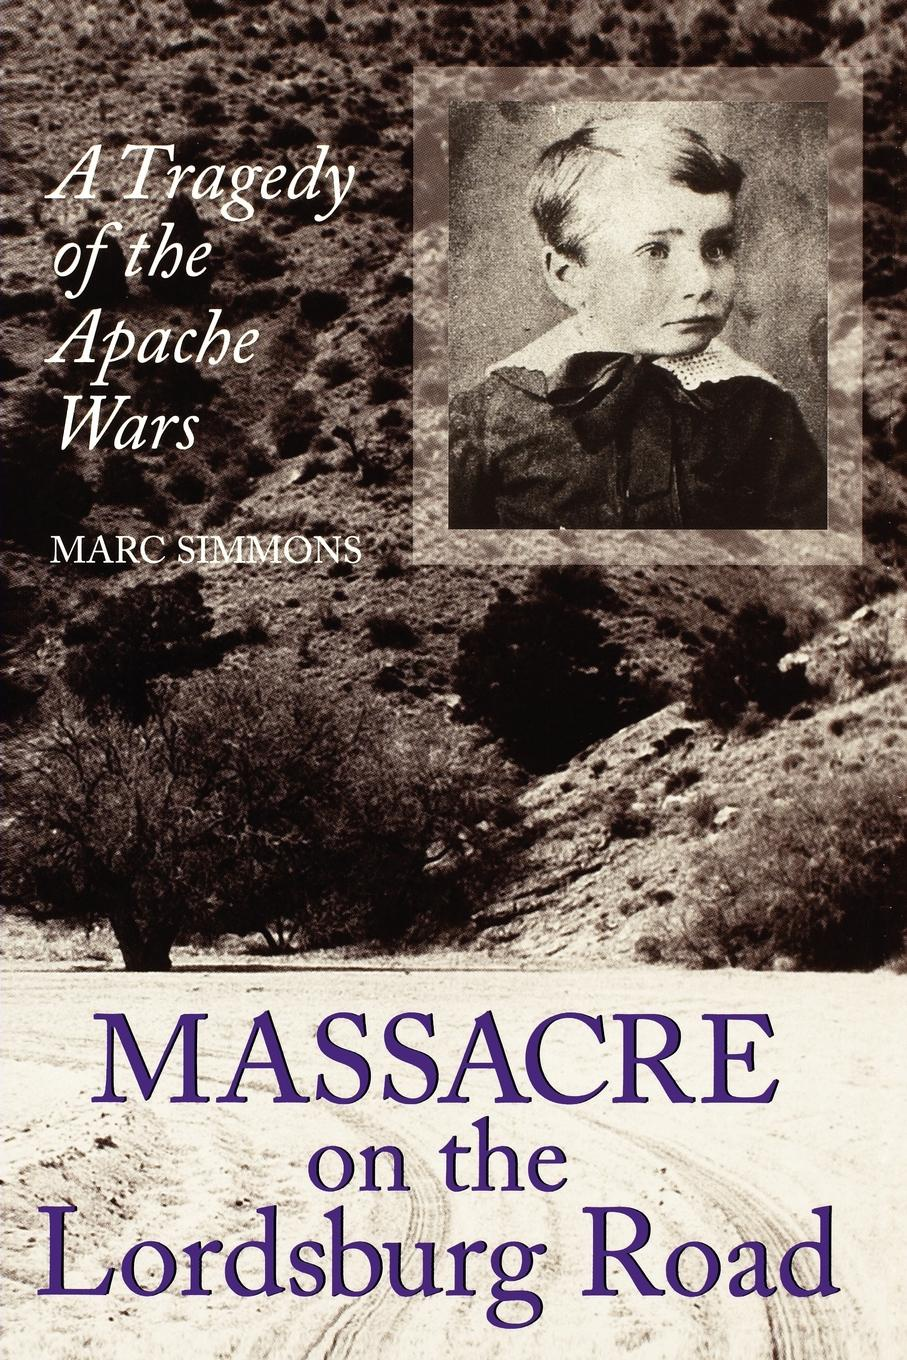 Фото - Marc Simmons Massacre on the Lordsburg Road. A Tragedy of the Apache Wars on the road the original scroll